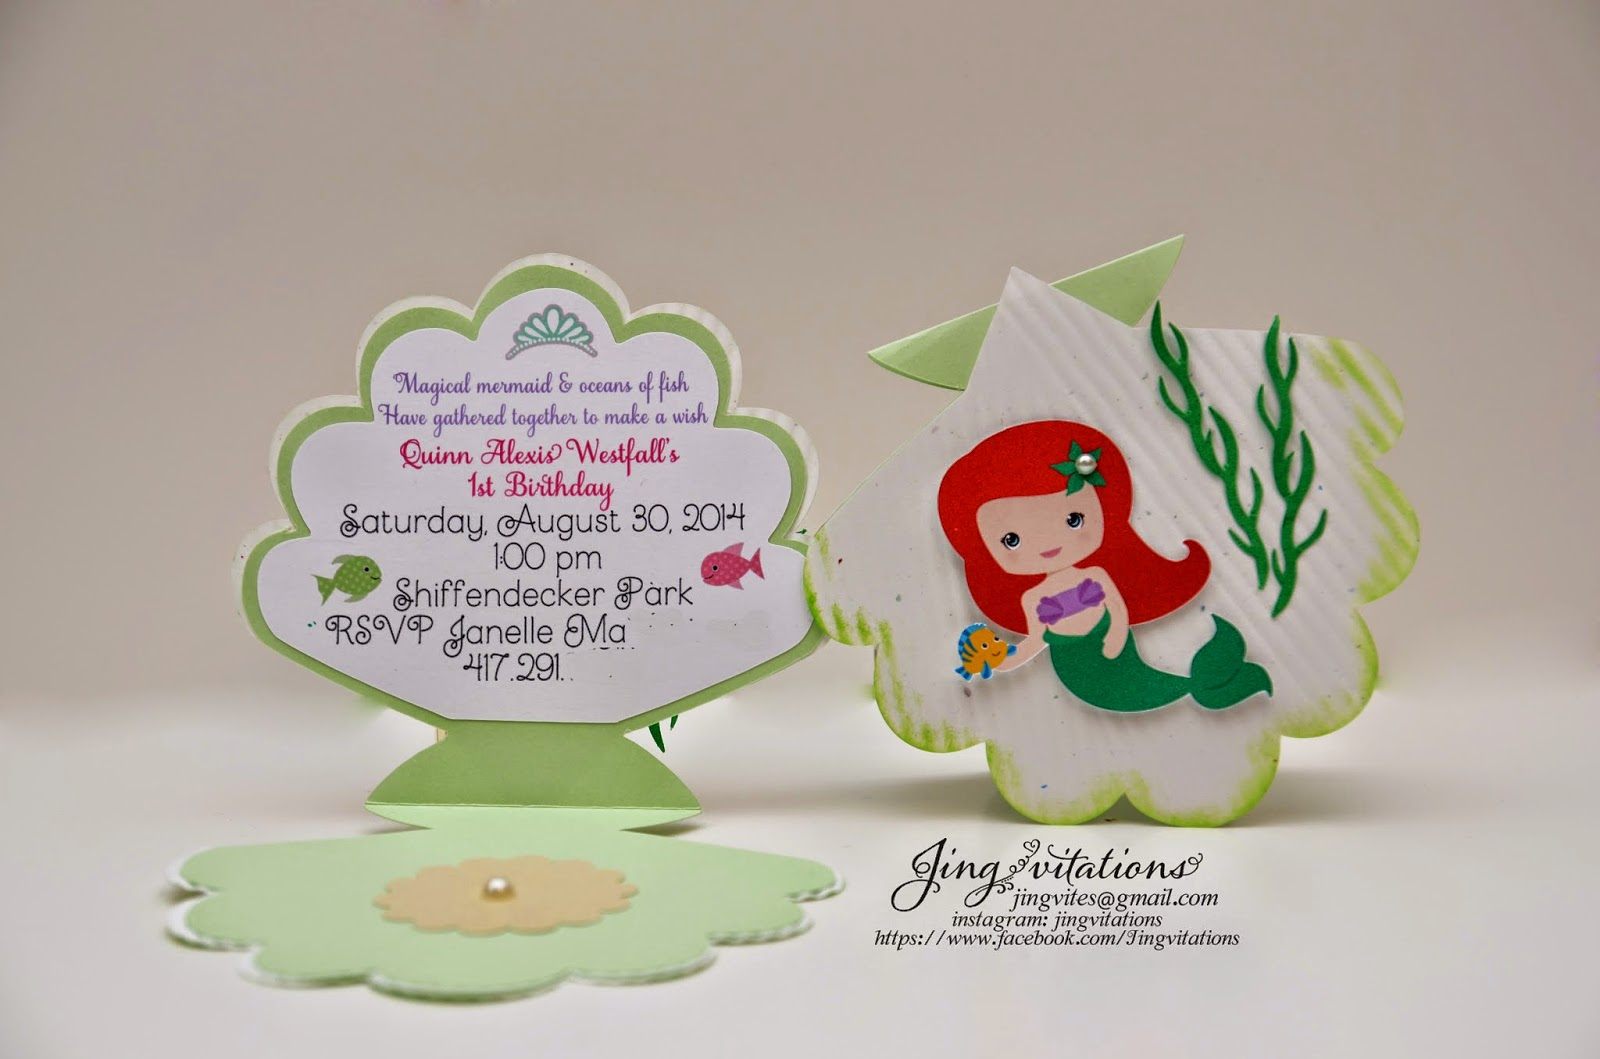 under_the_sea_invitations